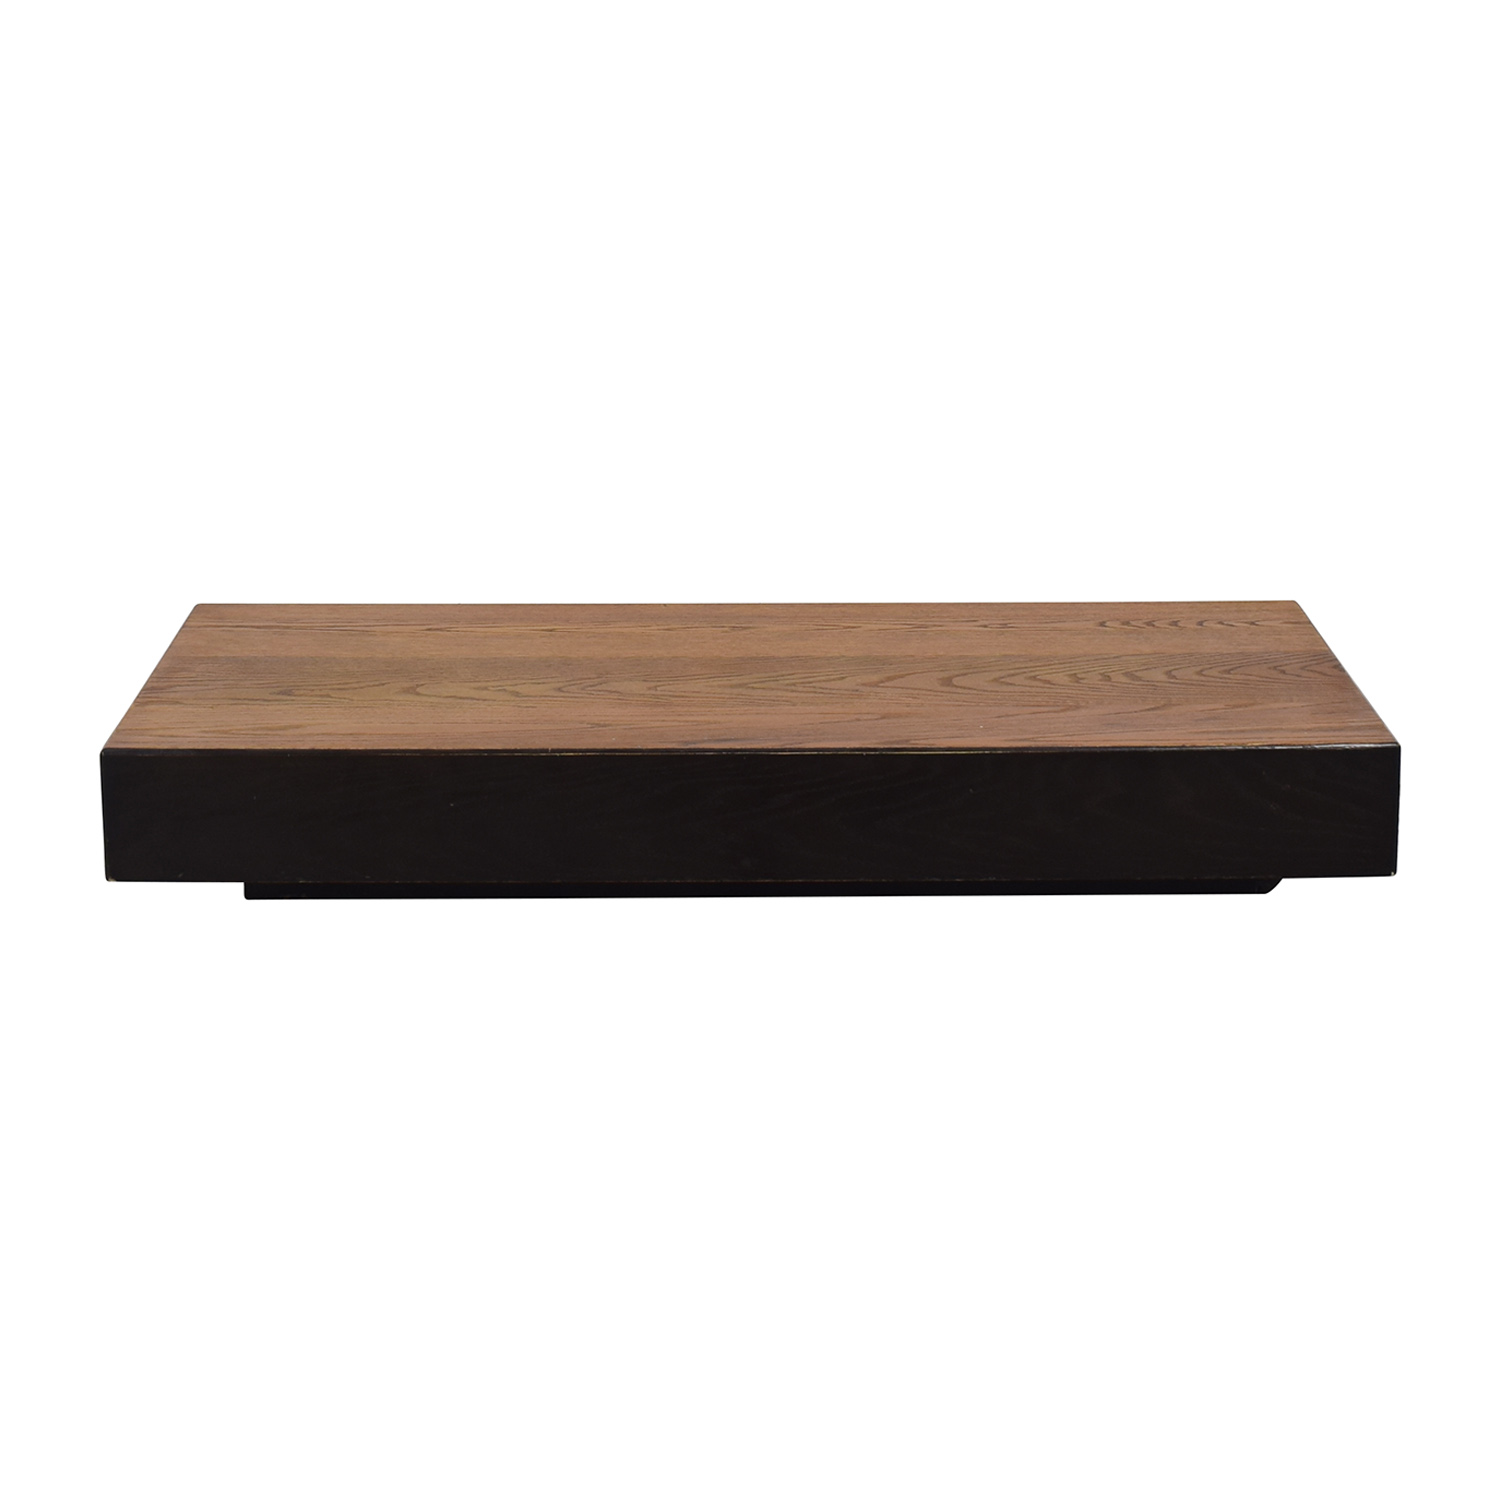 West Elm West Elm Coffee Table coupon